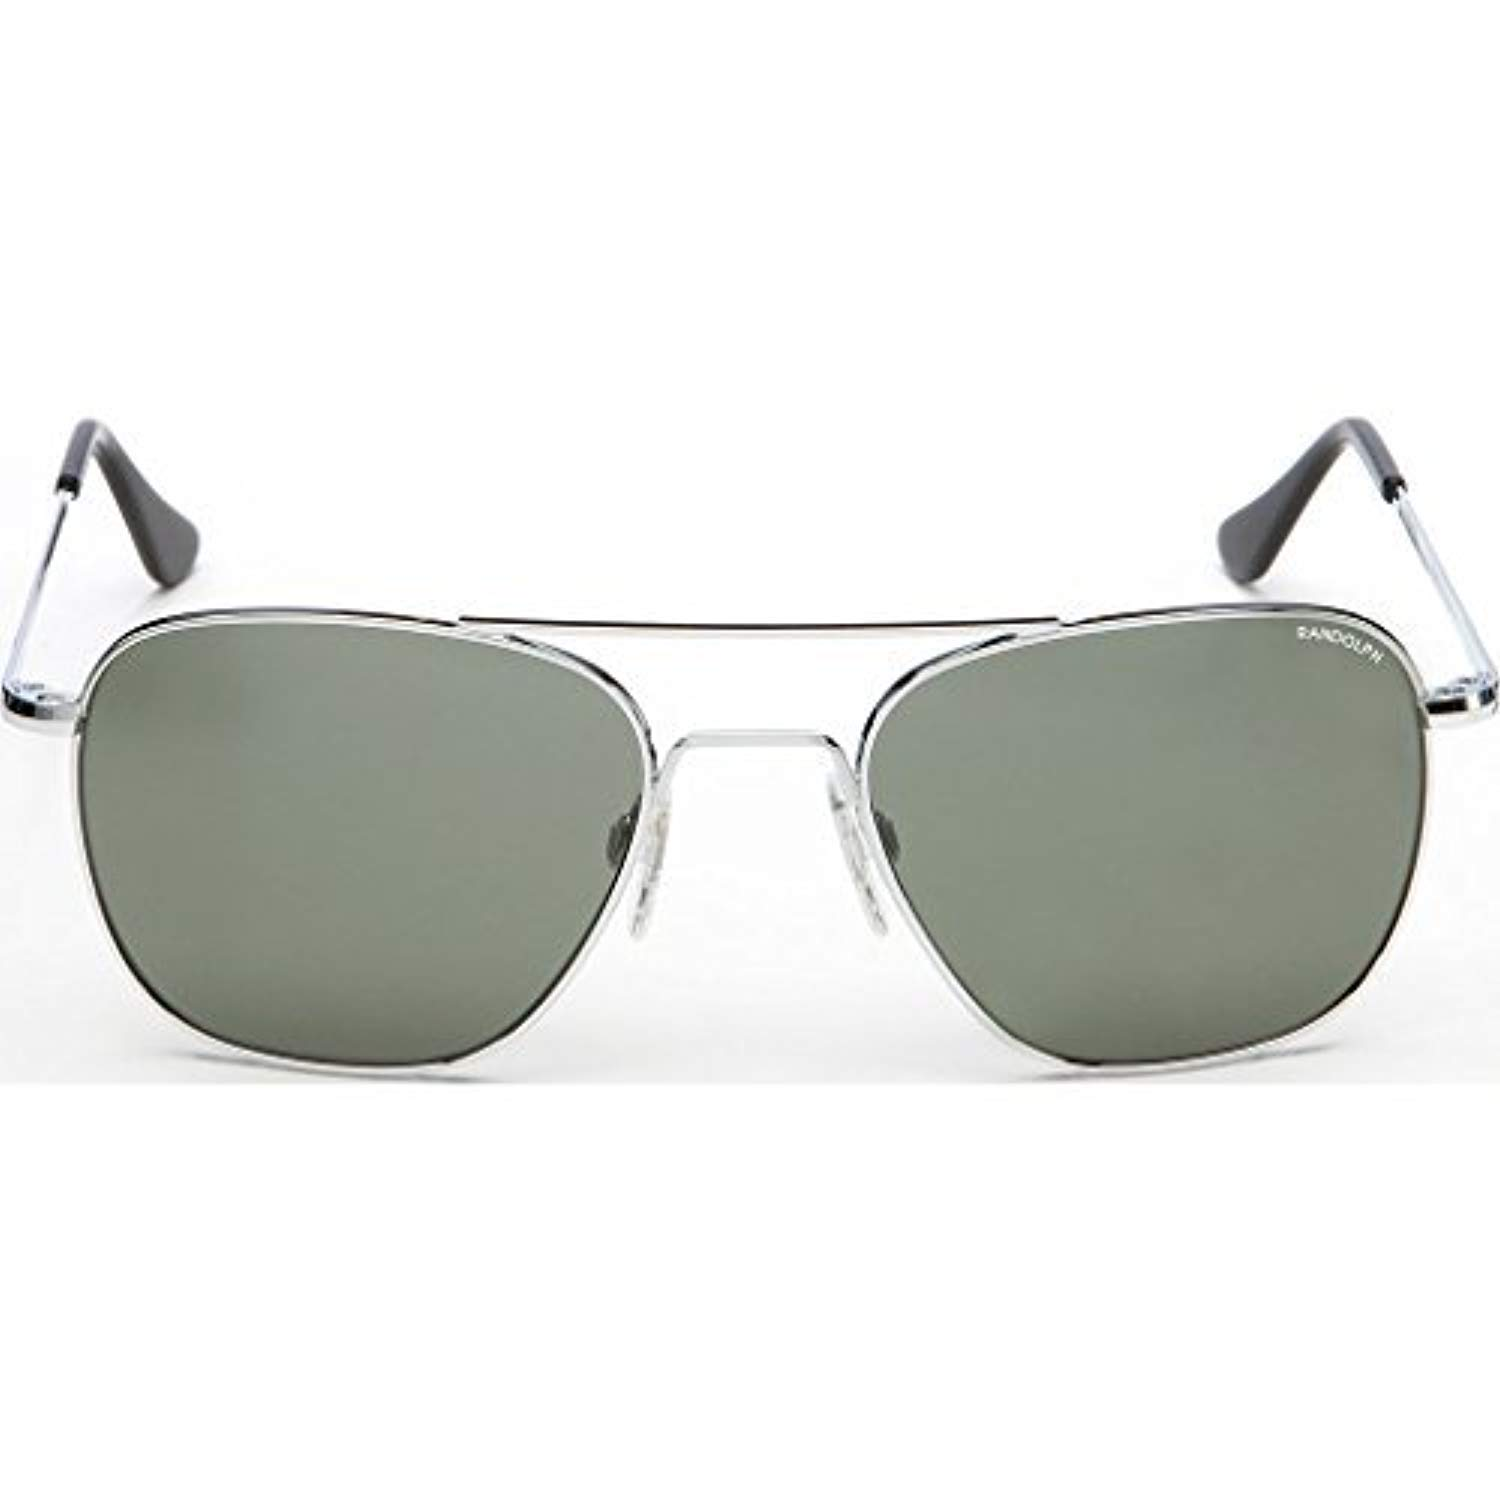 c66eb24723 Amazon.com  Randolph Aviator Bright Chrome Skull Temple Sunglasses  Clothing